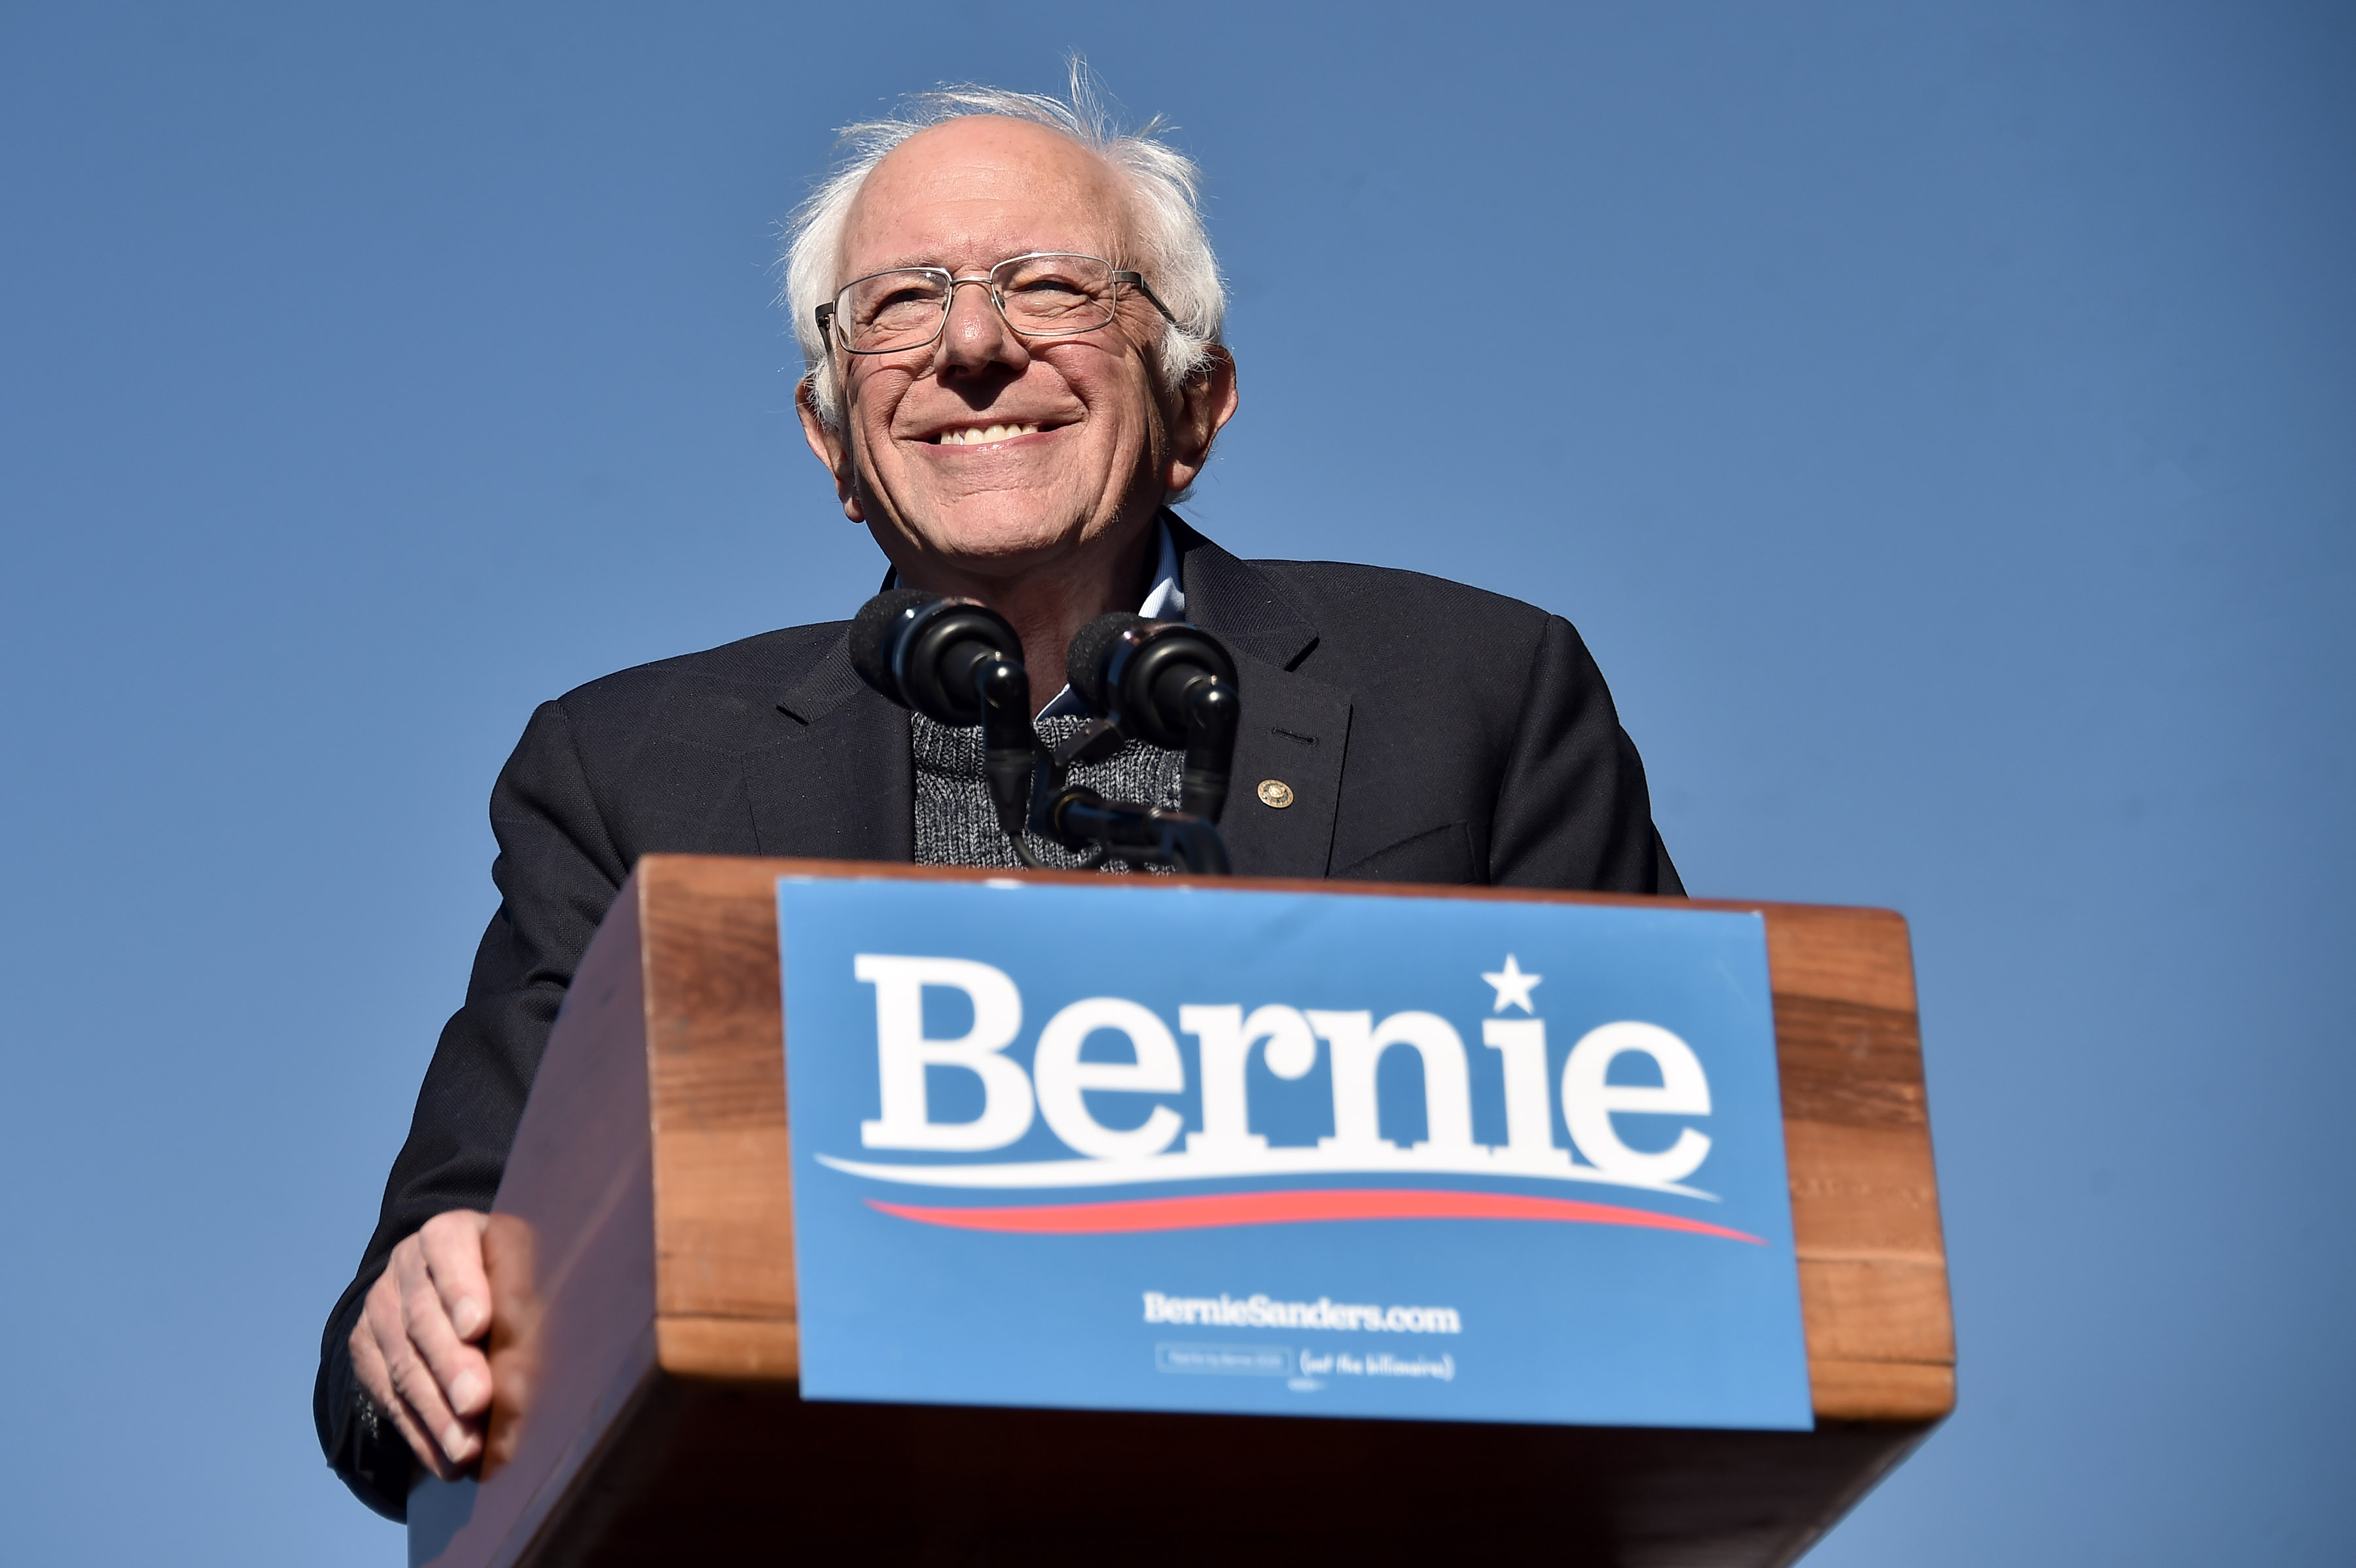 Bernie Sanders speaks during a campaign rally in Queensbridge Park on Oct. 19, 2019 in New York City.